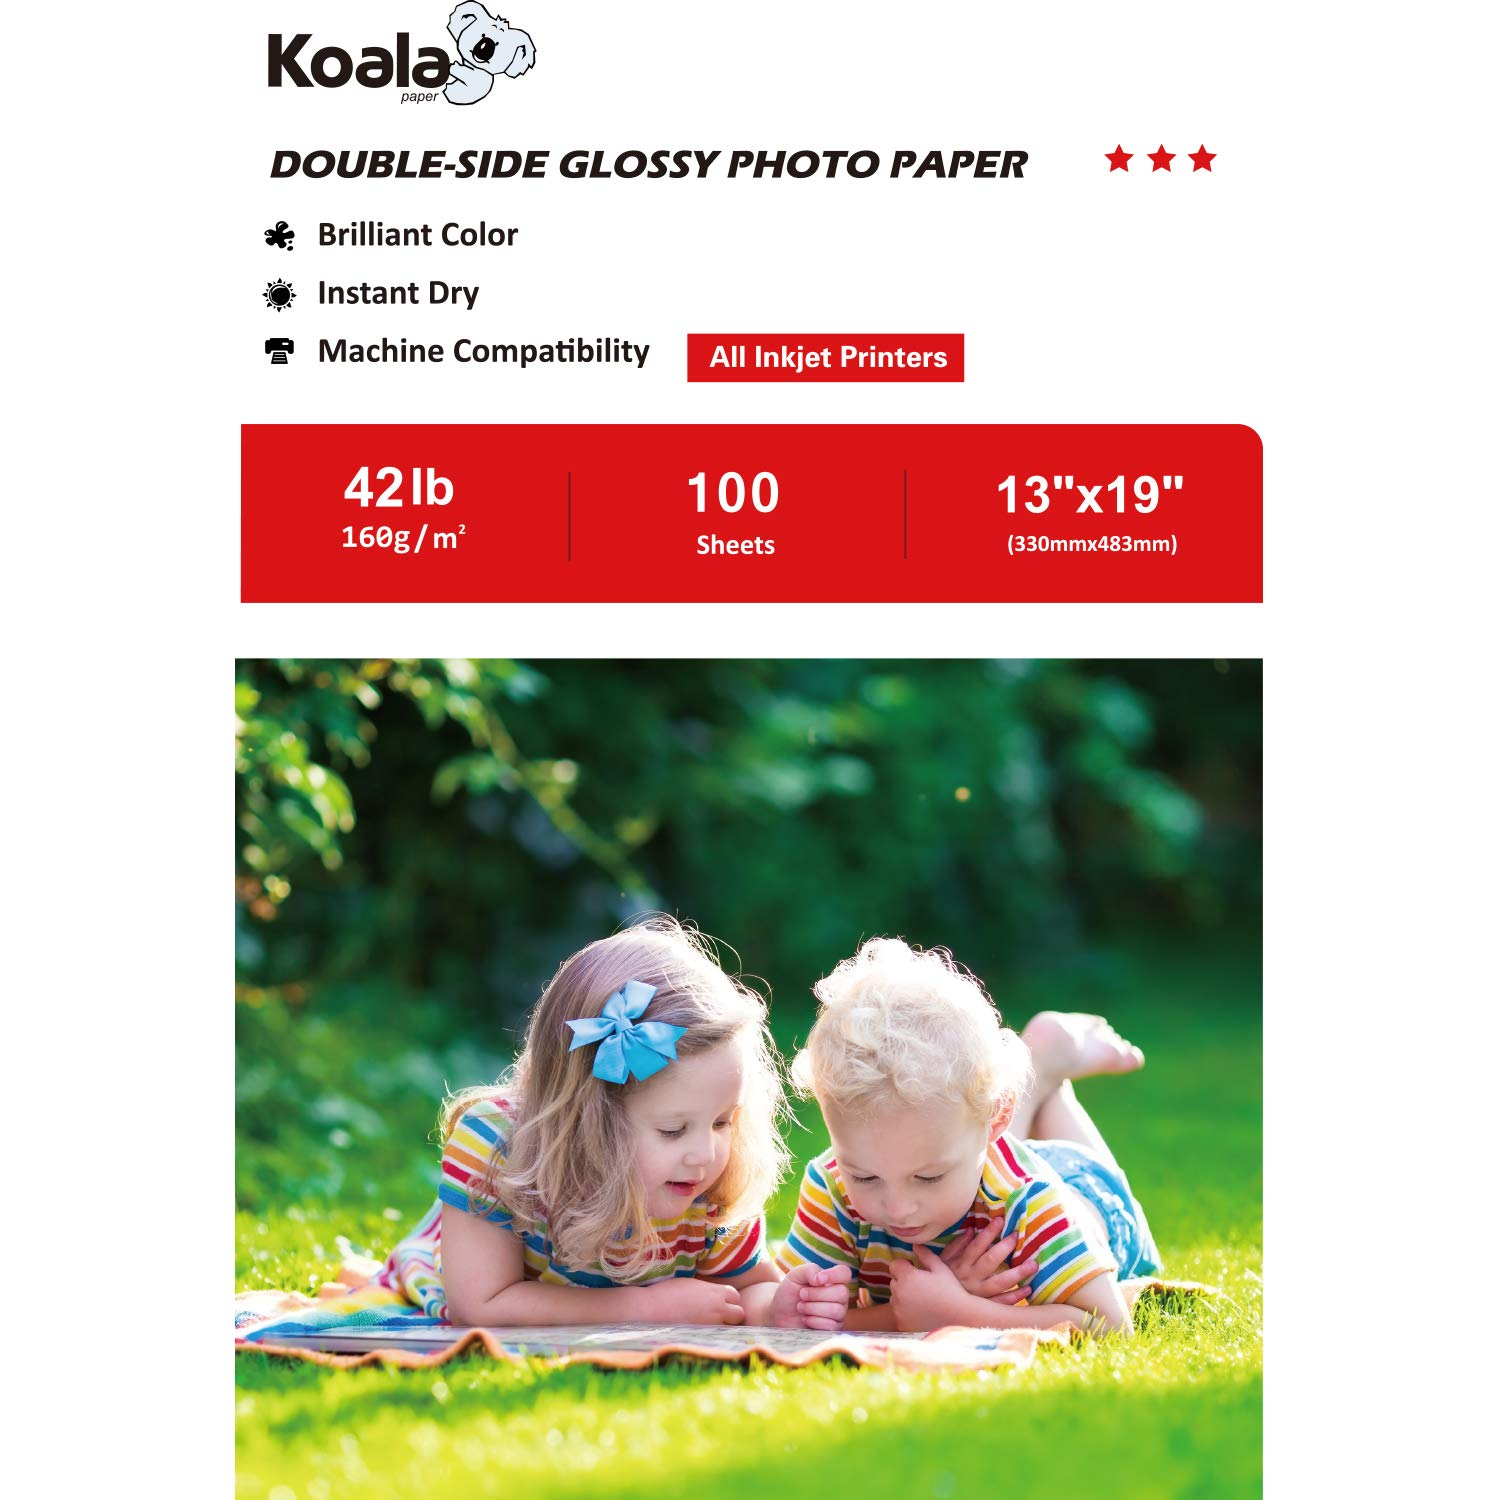 Koala Double Side Glossy Photo Paper 13x19 Inches 160gsm 100 Sheets Compatible with All Inkjet Printer